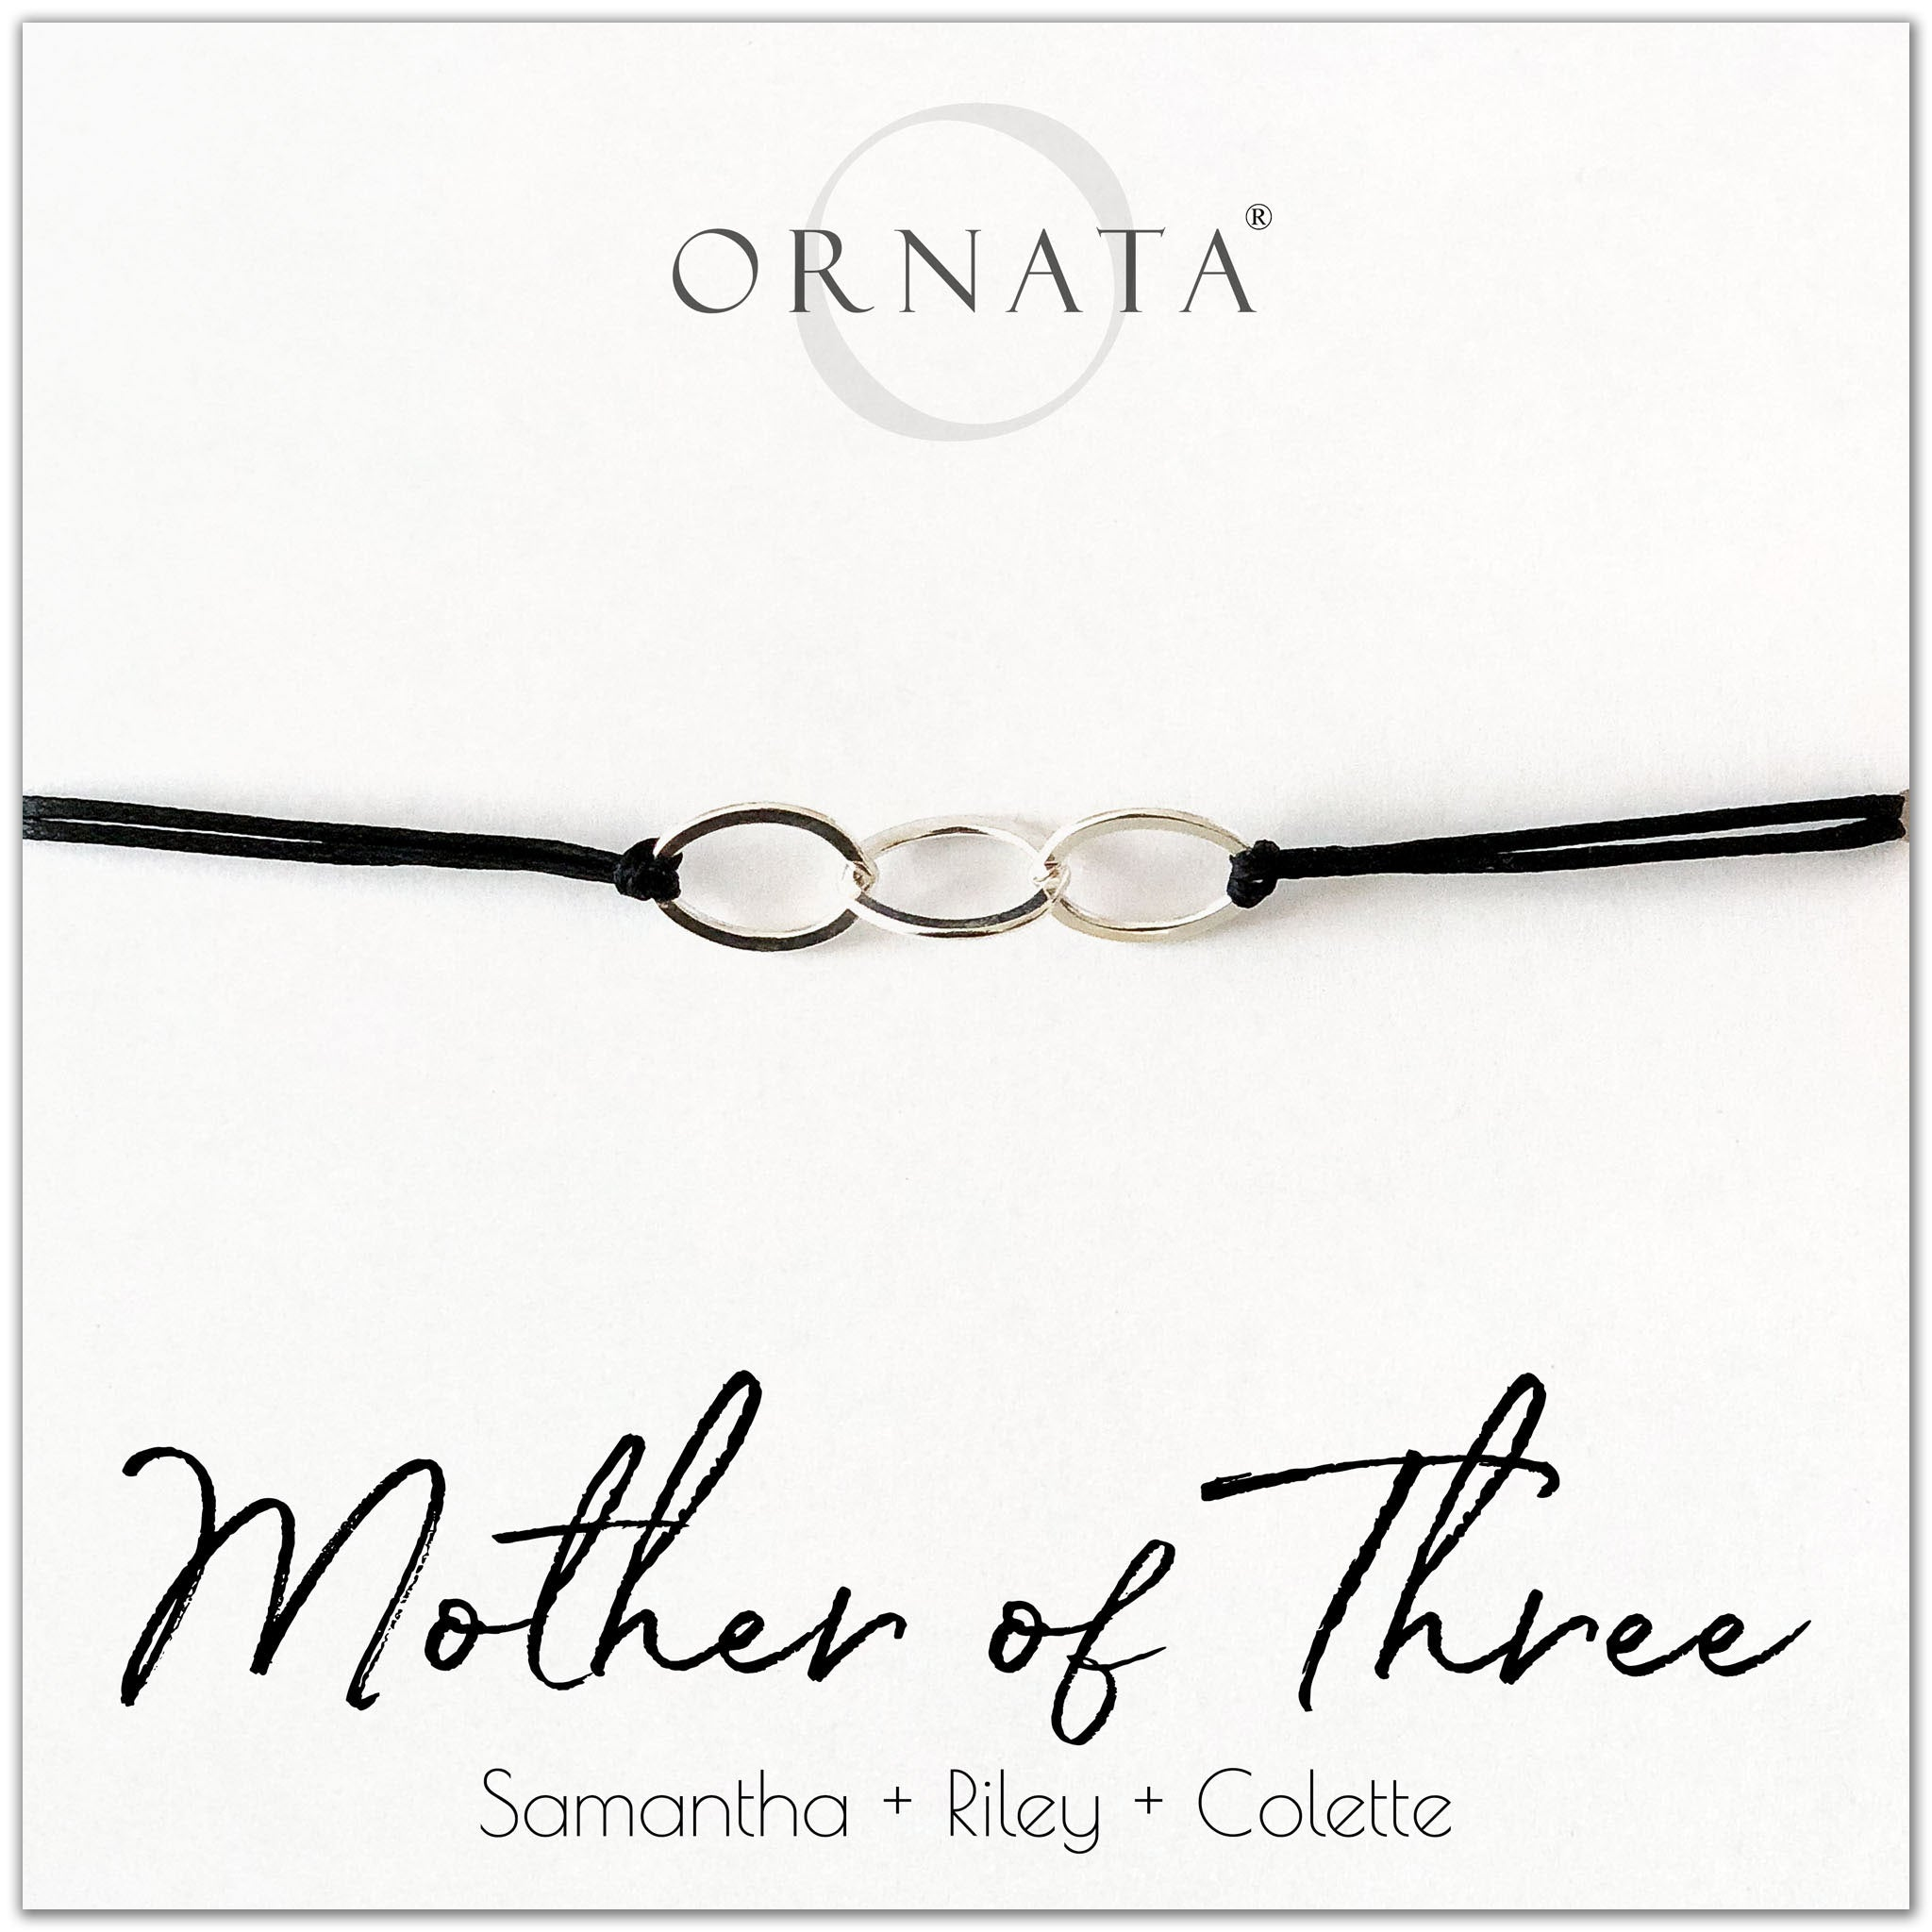 Mother of Three personalized sterling silver corded bolo bracelet. Our custom cord bracelets make good gifts for moms or mothers of 3 children. Mother bracelet with three sterling silver interlocking rings on black cord to represent a mother with three children. Great custom Mother's Day gift.